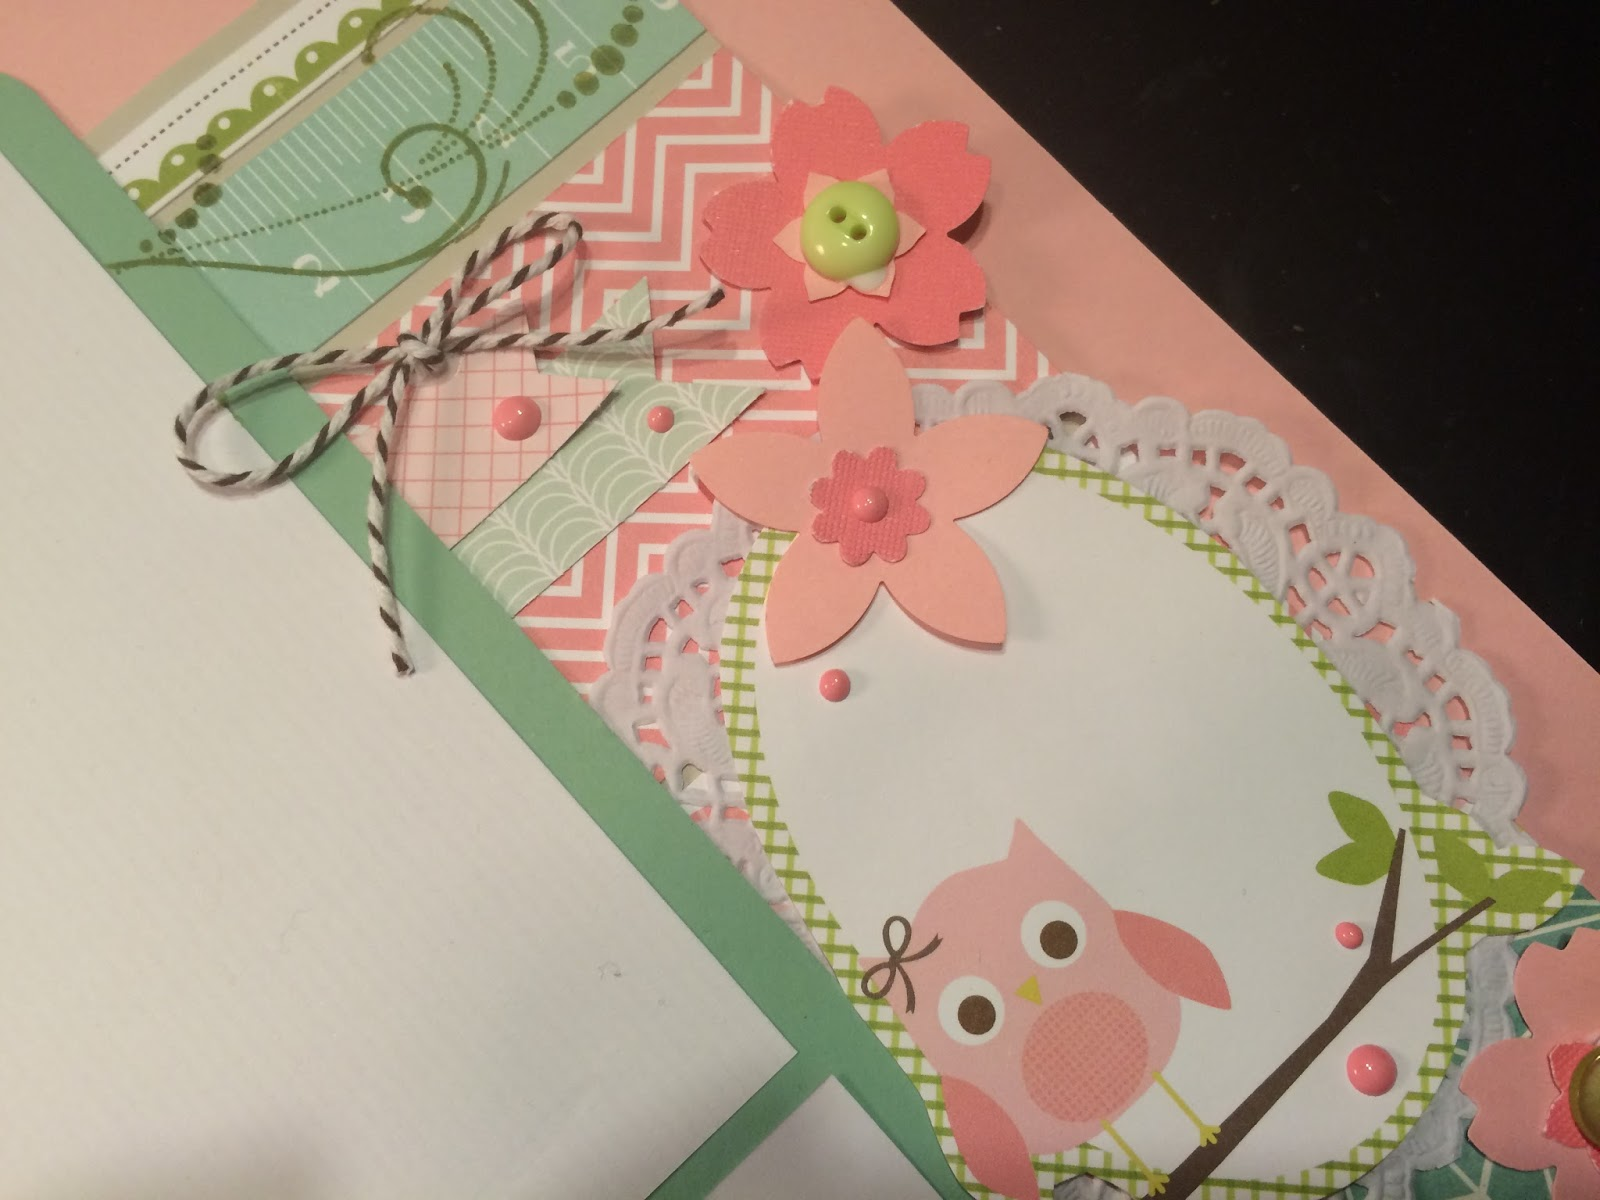 Scrapbook ideas for baby girl - My Latest Customer Requested Gorgeous Baby Girl Pages So Here S What I Came Up With She Was Thrilled With The Results